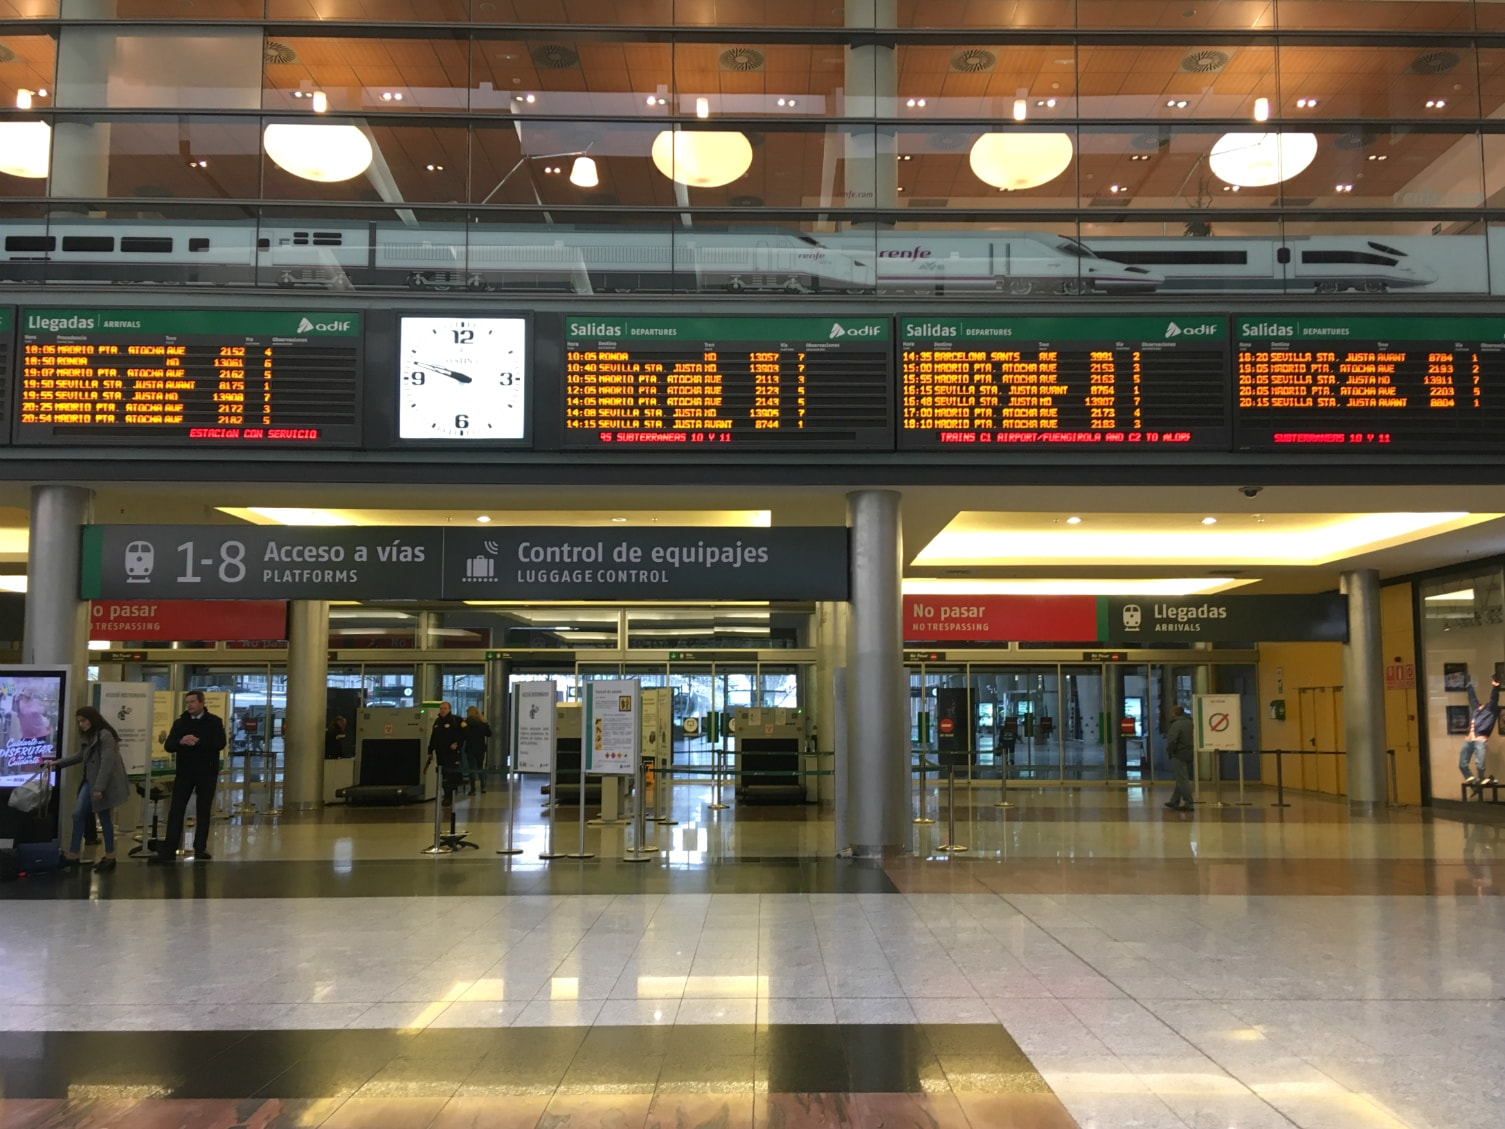 Malaga station departures screen & interiors